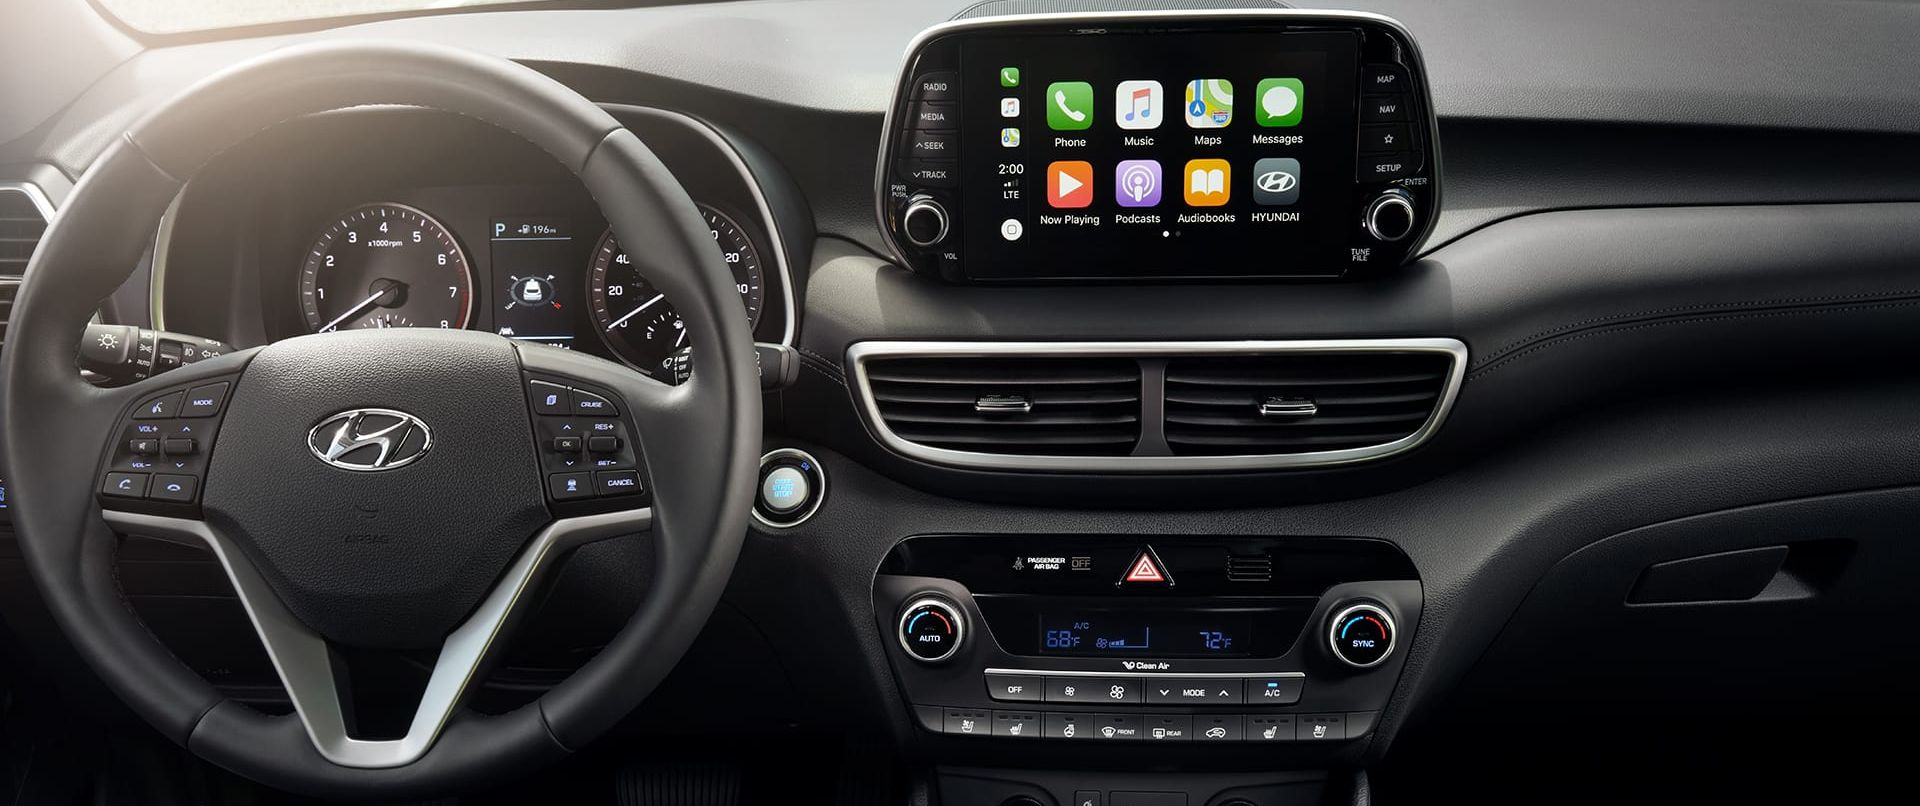 Technology in the 2019 Tucson